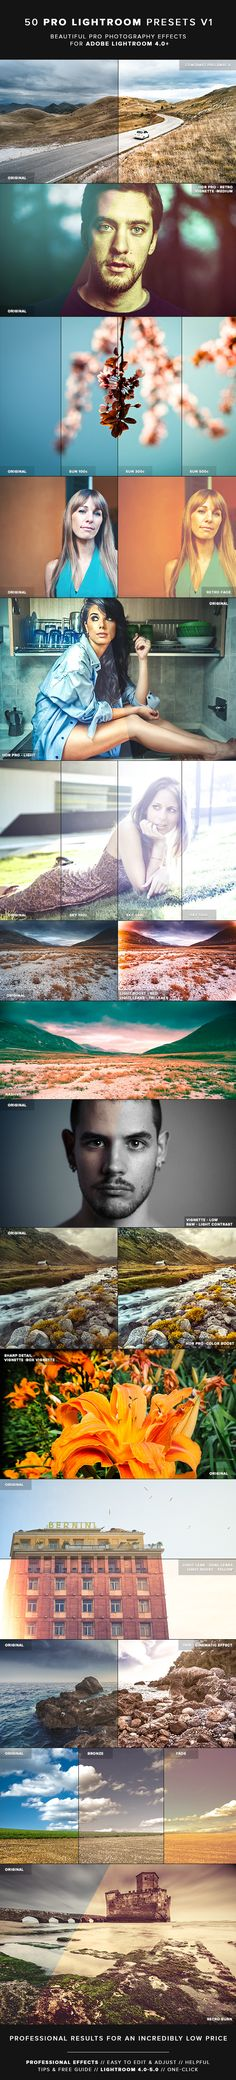 50 Professional Lightroom Effects.  http://graphicriver.net/item/50-pro-lightroom-presets-v1/5615802?WT.ac=portfolio&WT.seg_1=portfolio&WT.z_author=MikeMoloney&ref=MikeMoloney